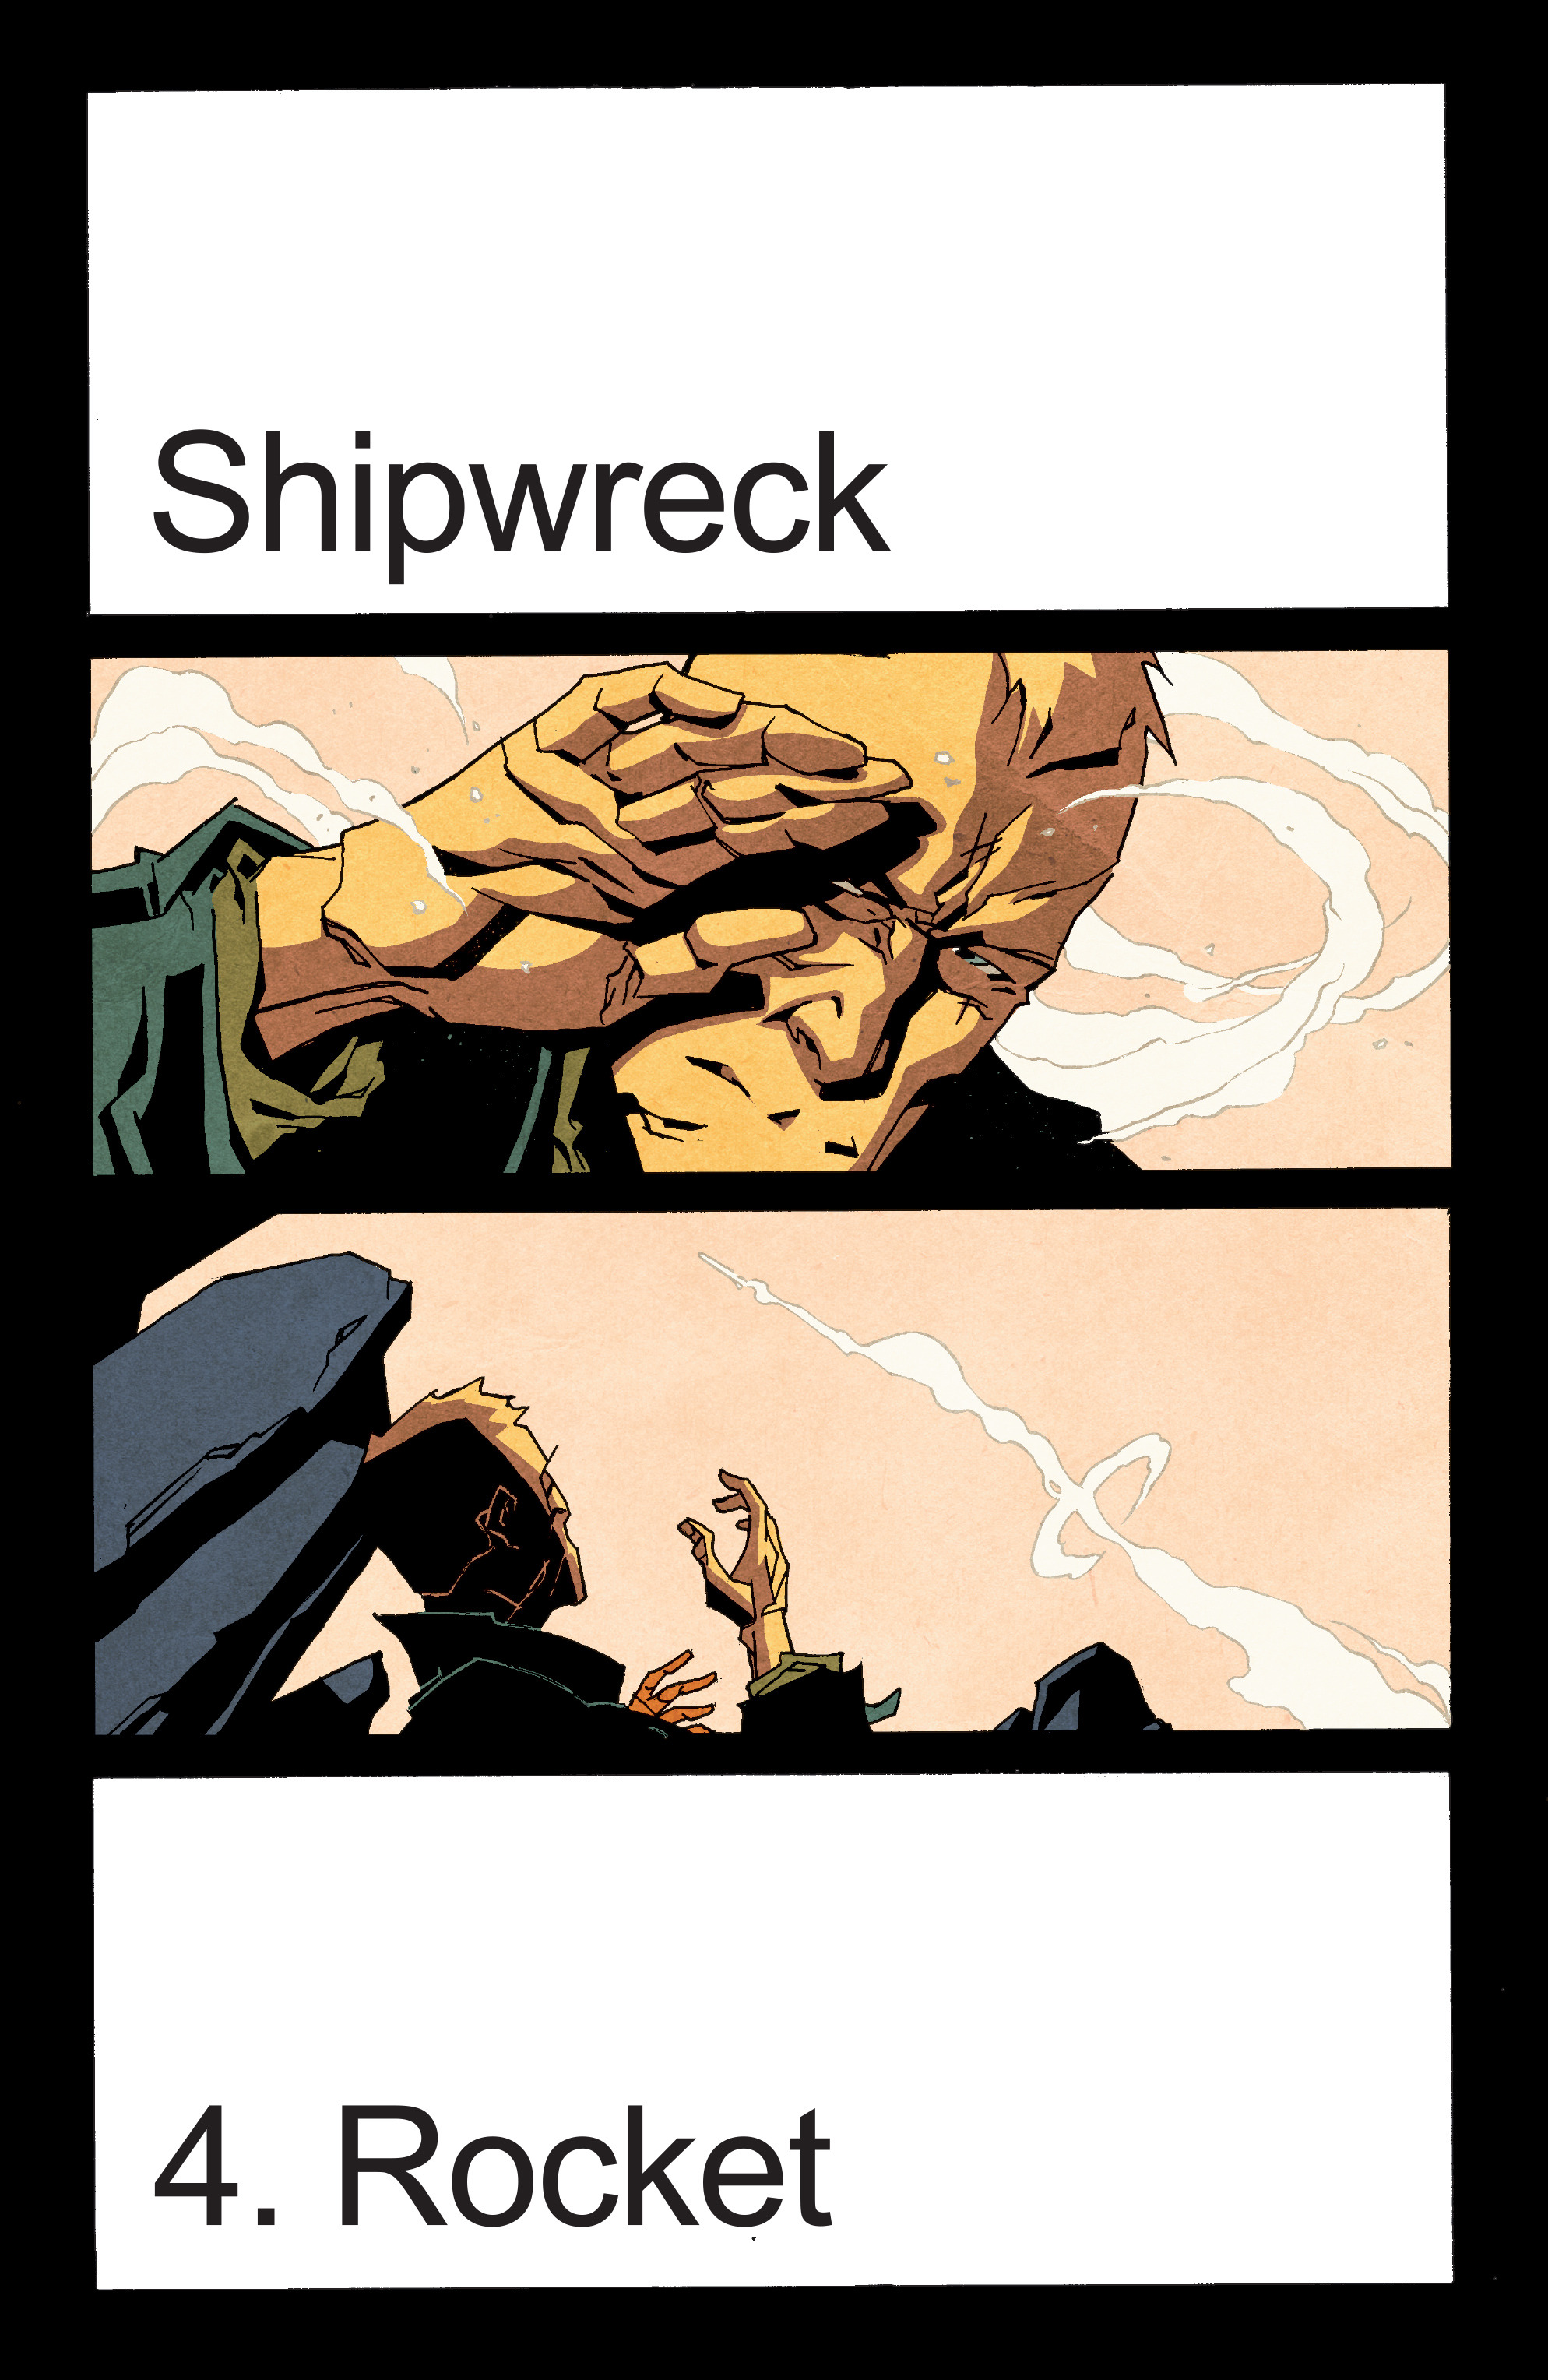 Read online Shipwreck comic -  Issue #4 - 9